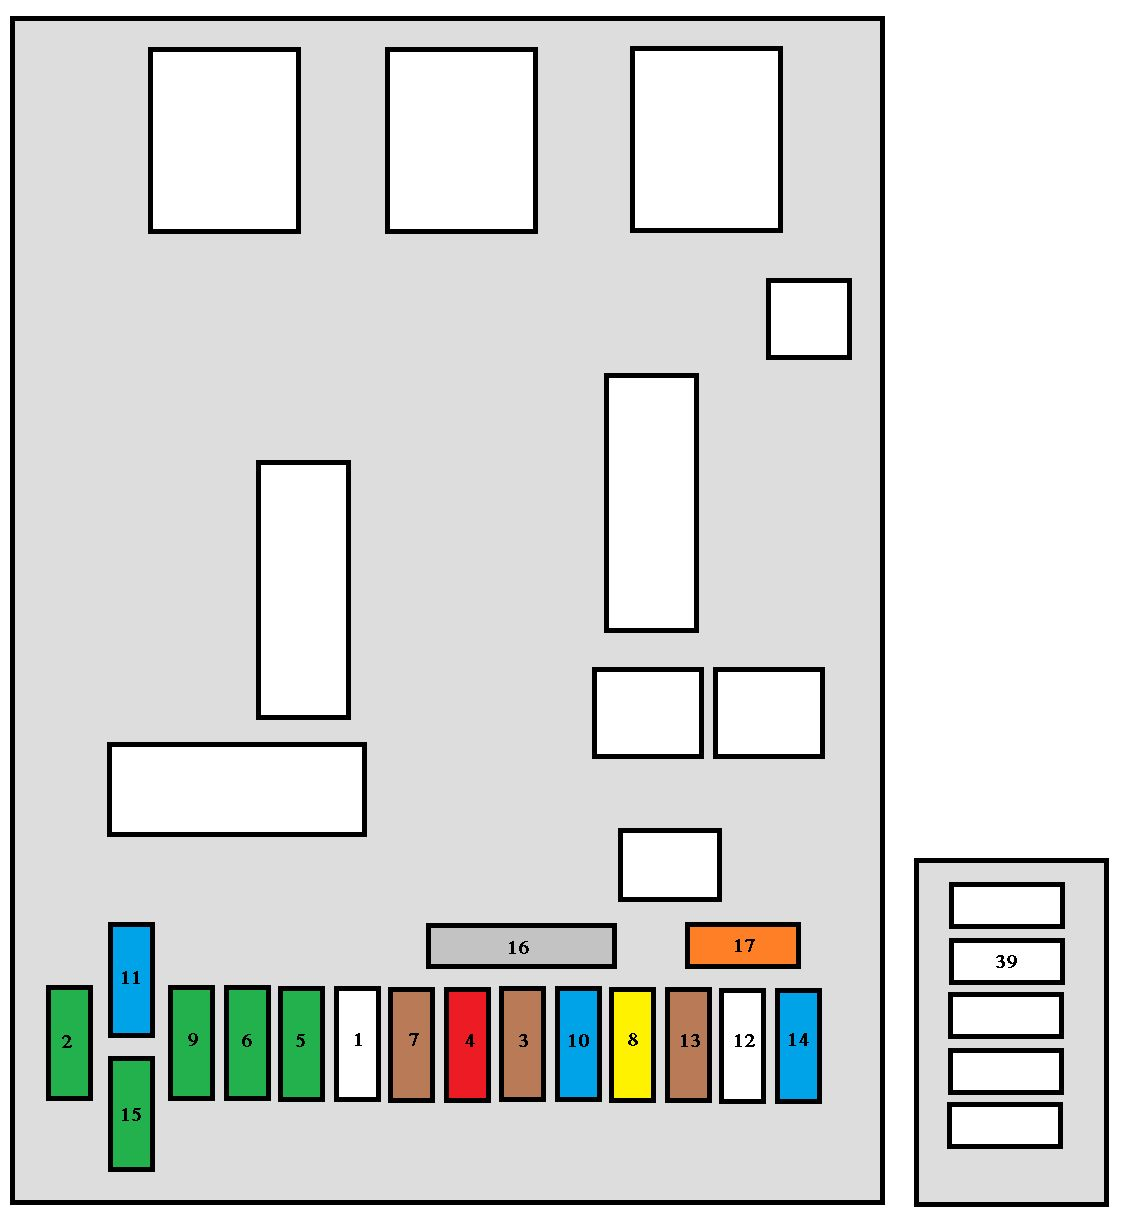 small resolution of fuse box diagram peugeot 206 wiring library peugeot 206 1 4 hdi fuse box diagram fuse box